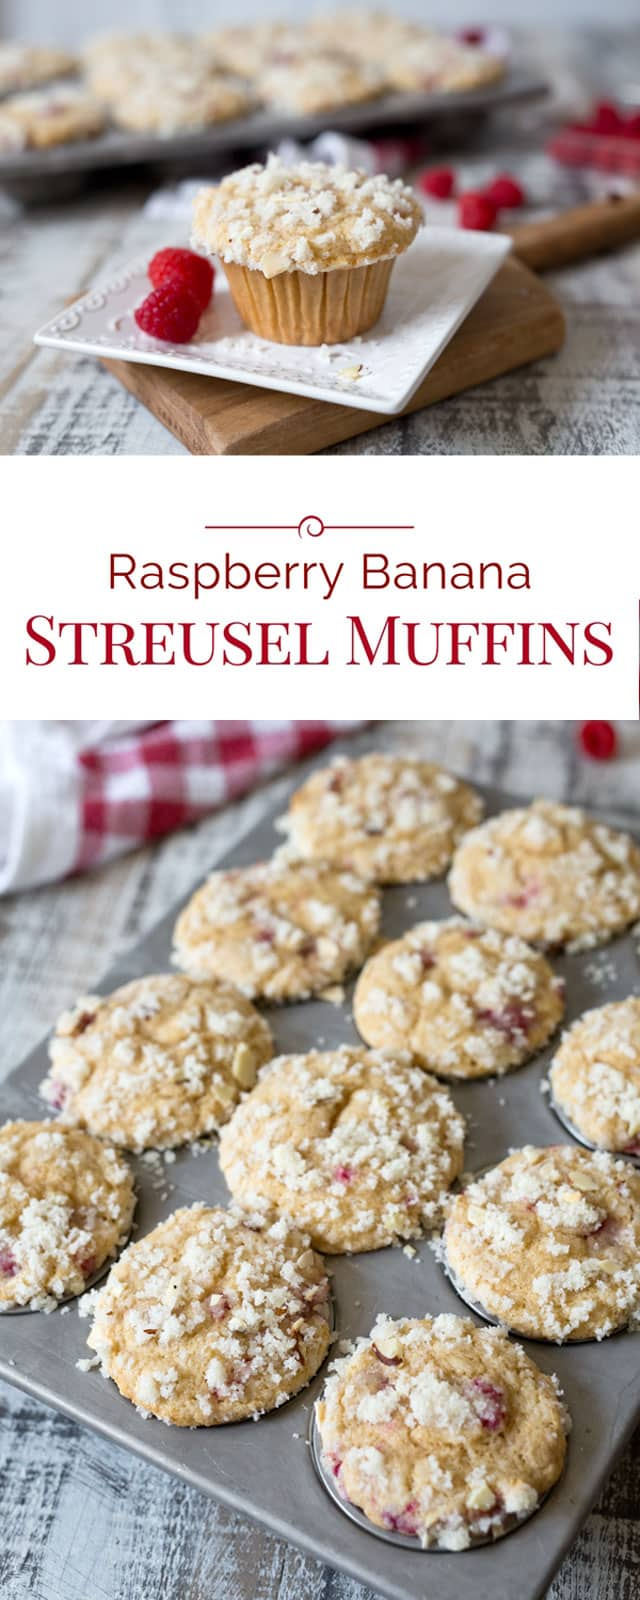 Raspberry-Banana-Streusel-Muffins-Collage-Barbara-Bakes